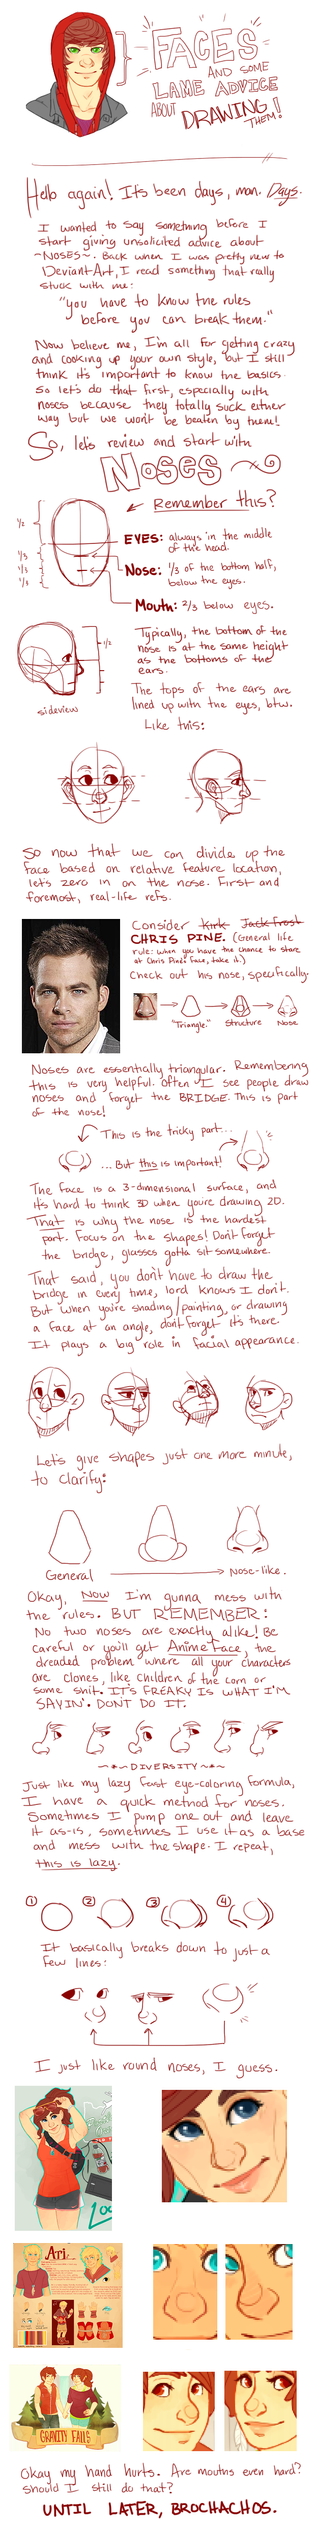 Faces - NOSES by 1000th